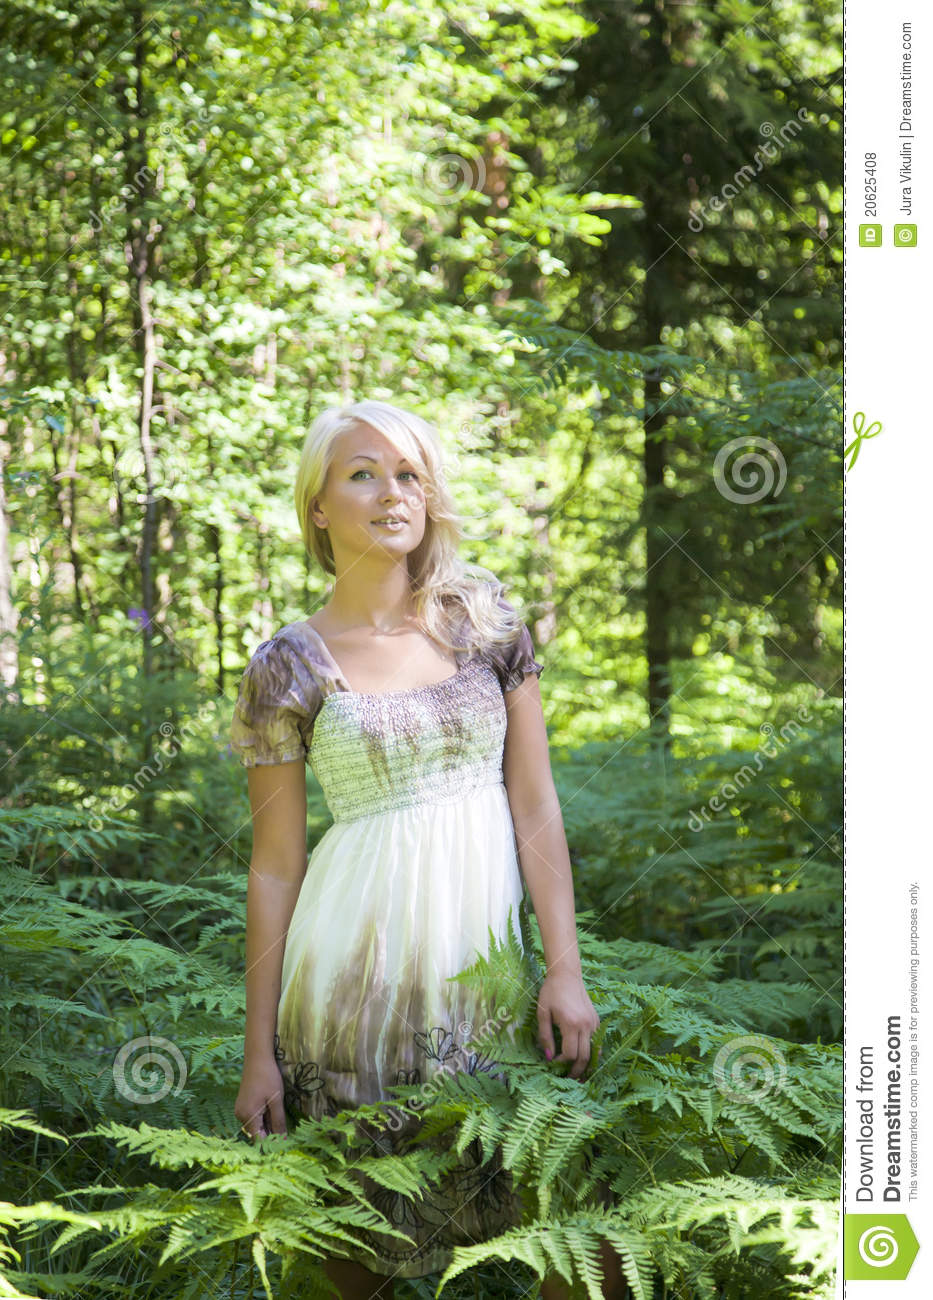 The Wood Nymph Royalty Free Stock Photos - Image: 20625408